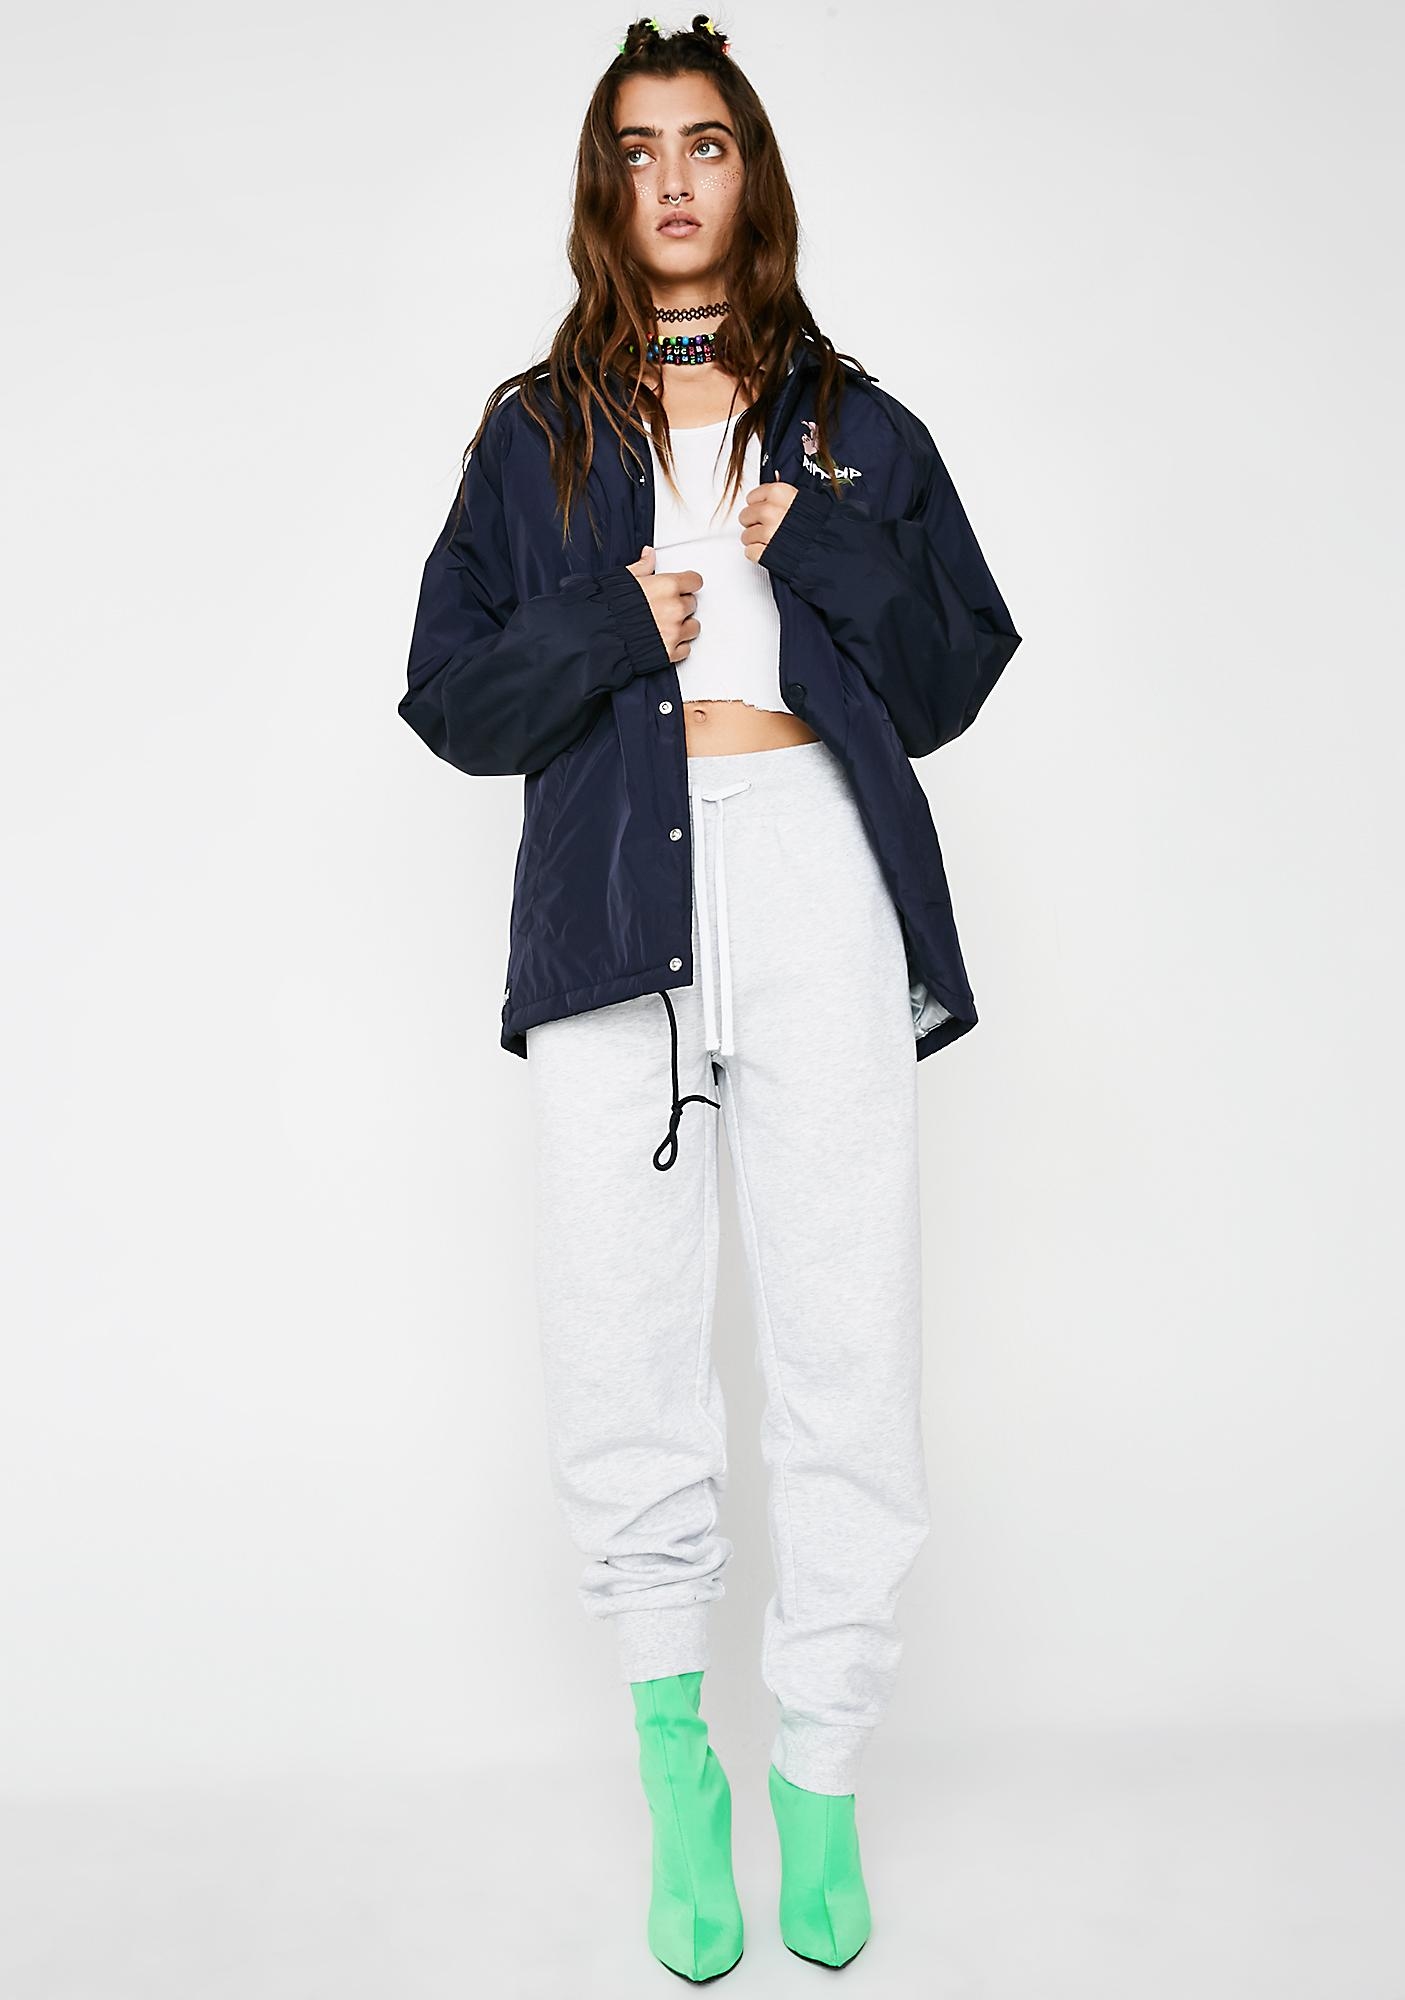 RIPNDIP Peek A Nermal Sweatpants